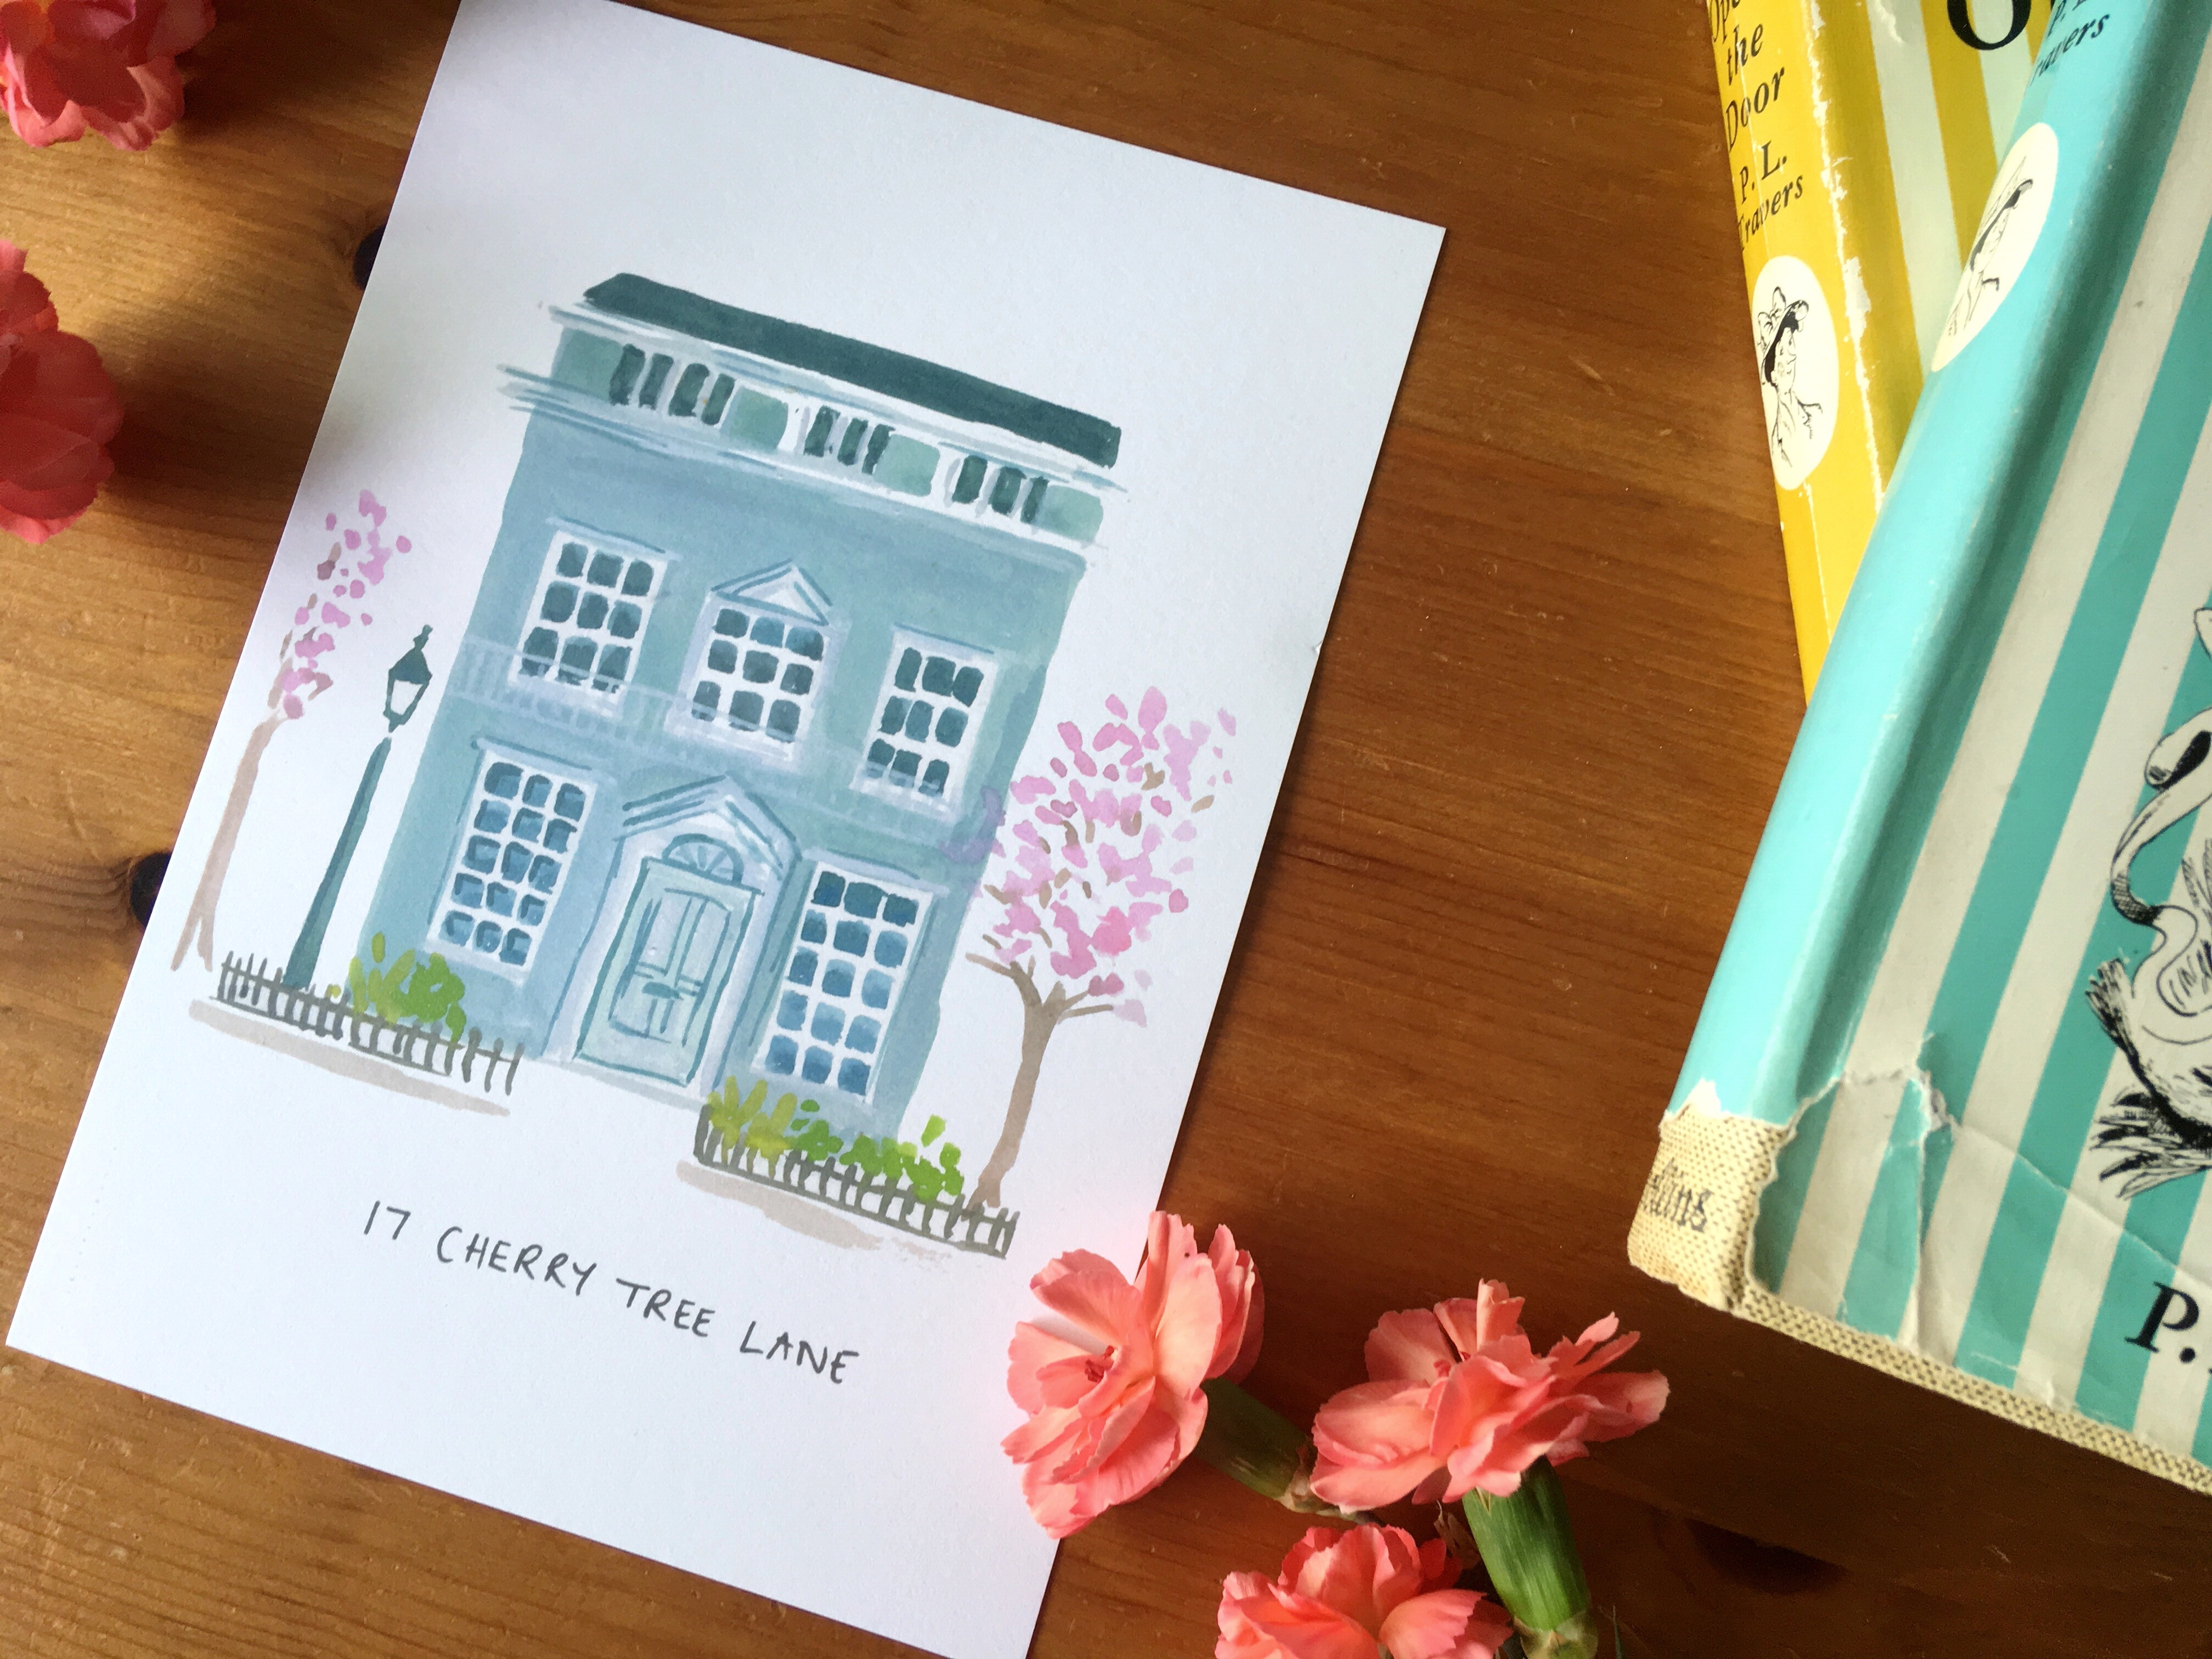 Cherry Tree Lane Mary Poppins House print by Zoeprose- fictional house wall art series